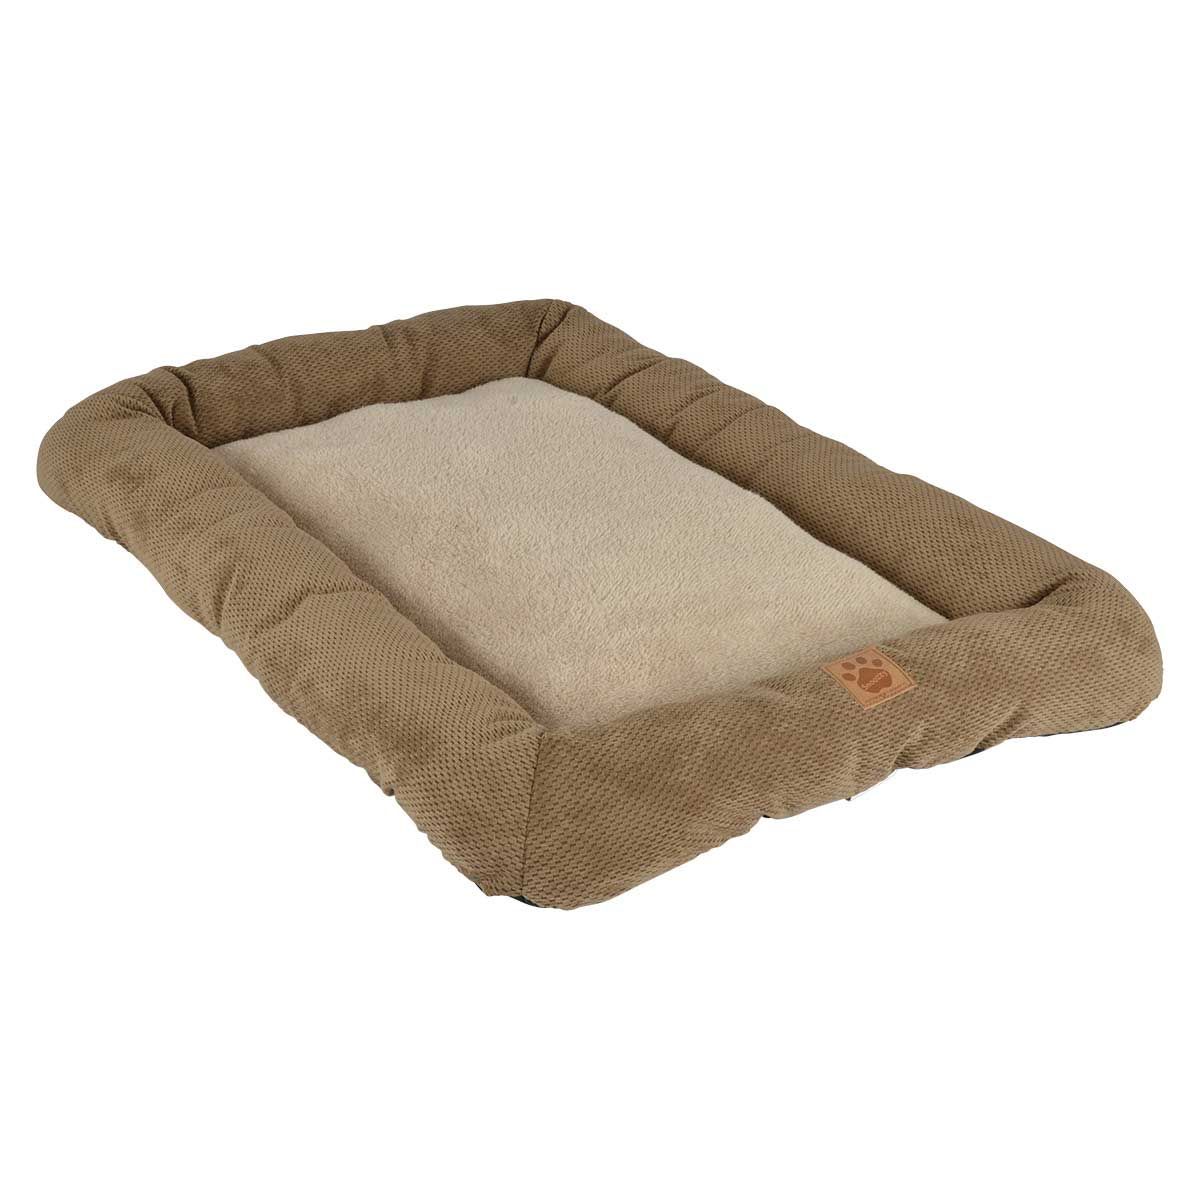 Tan Snoozzy Low Bumper Crate Mat 37 inches by 25 inches